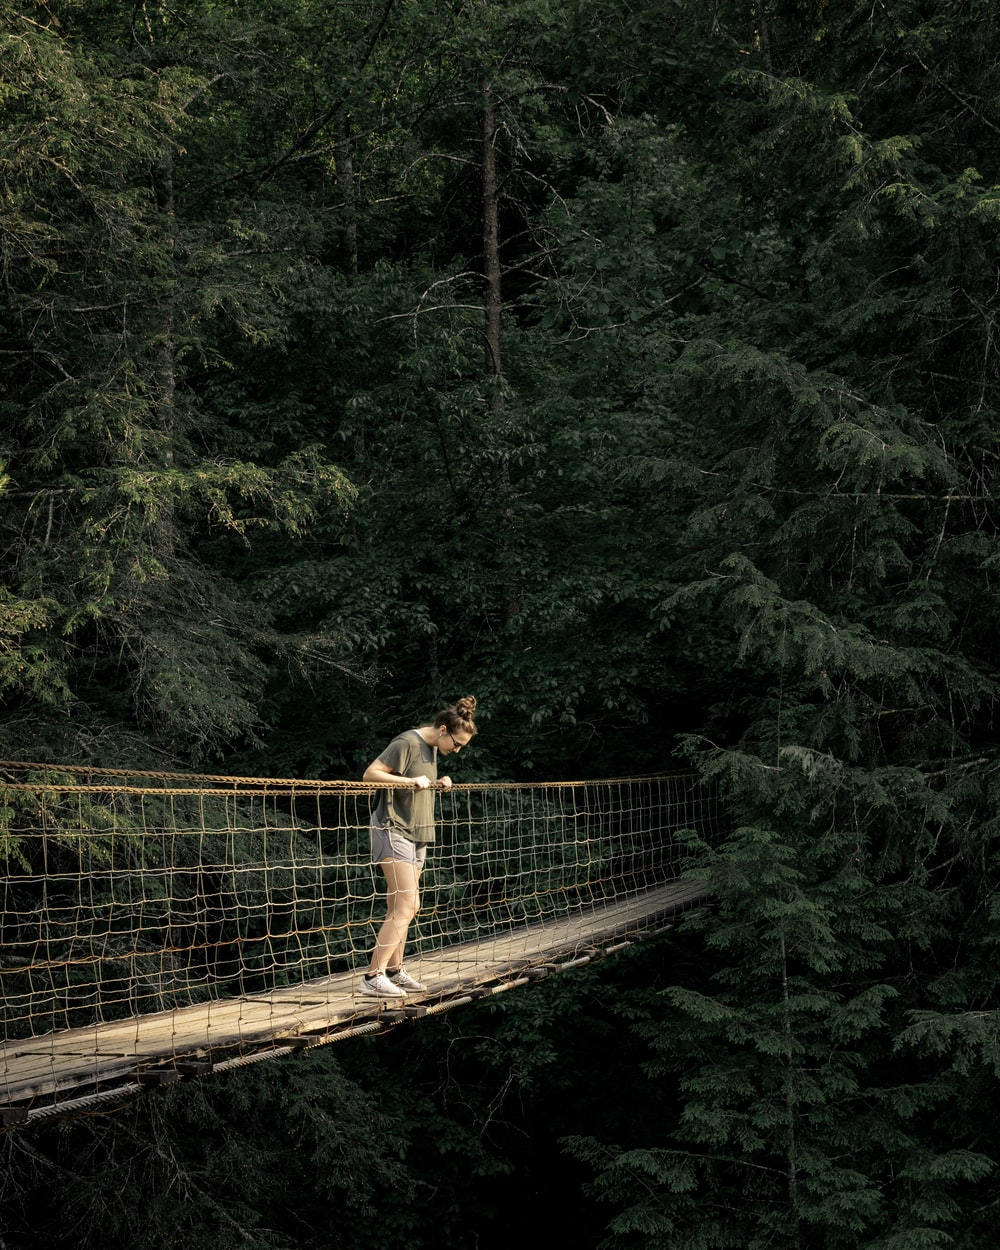 woman viewing downward on hanging bridge